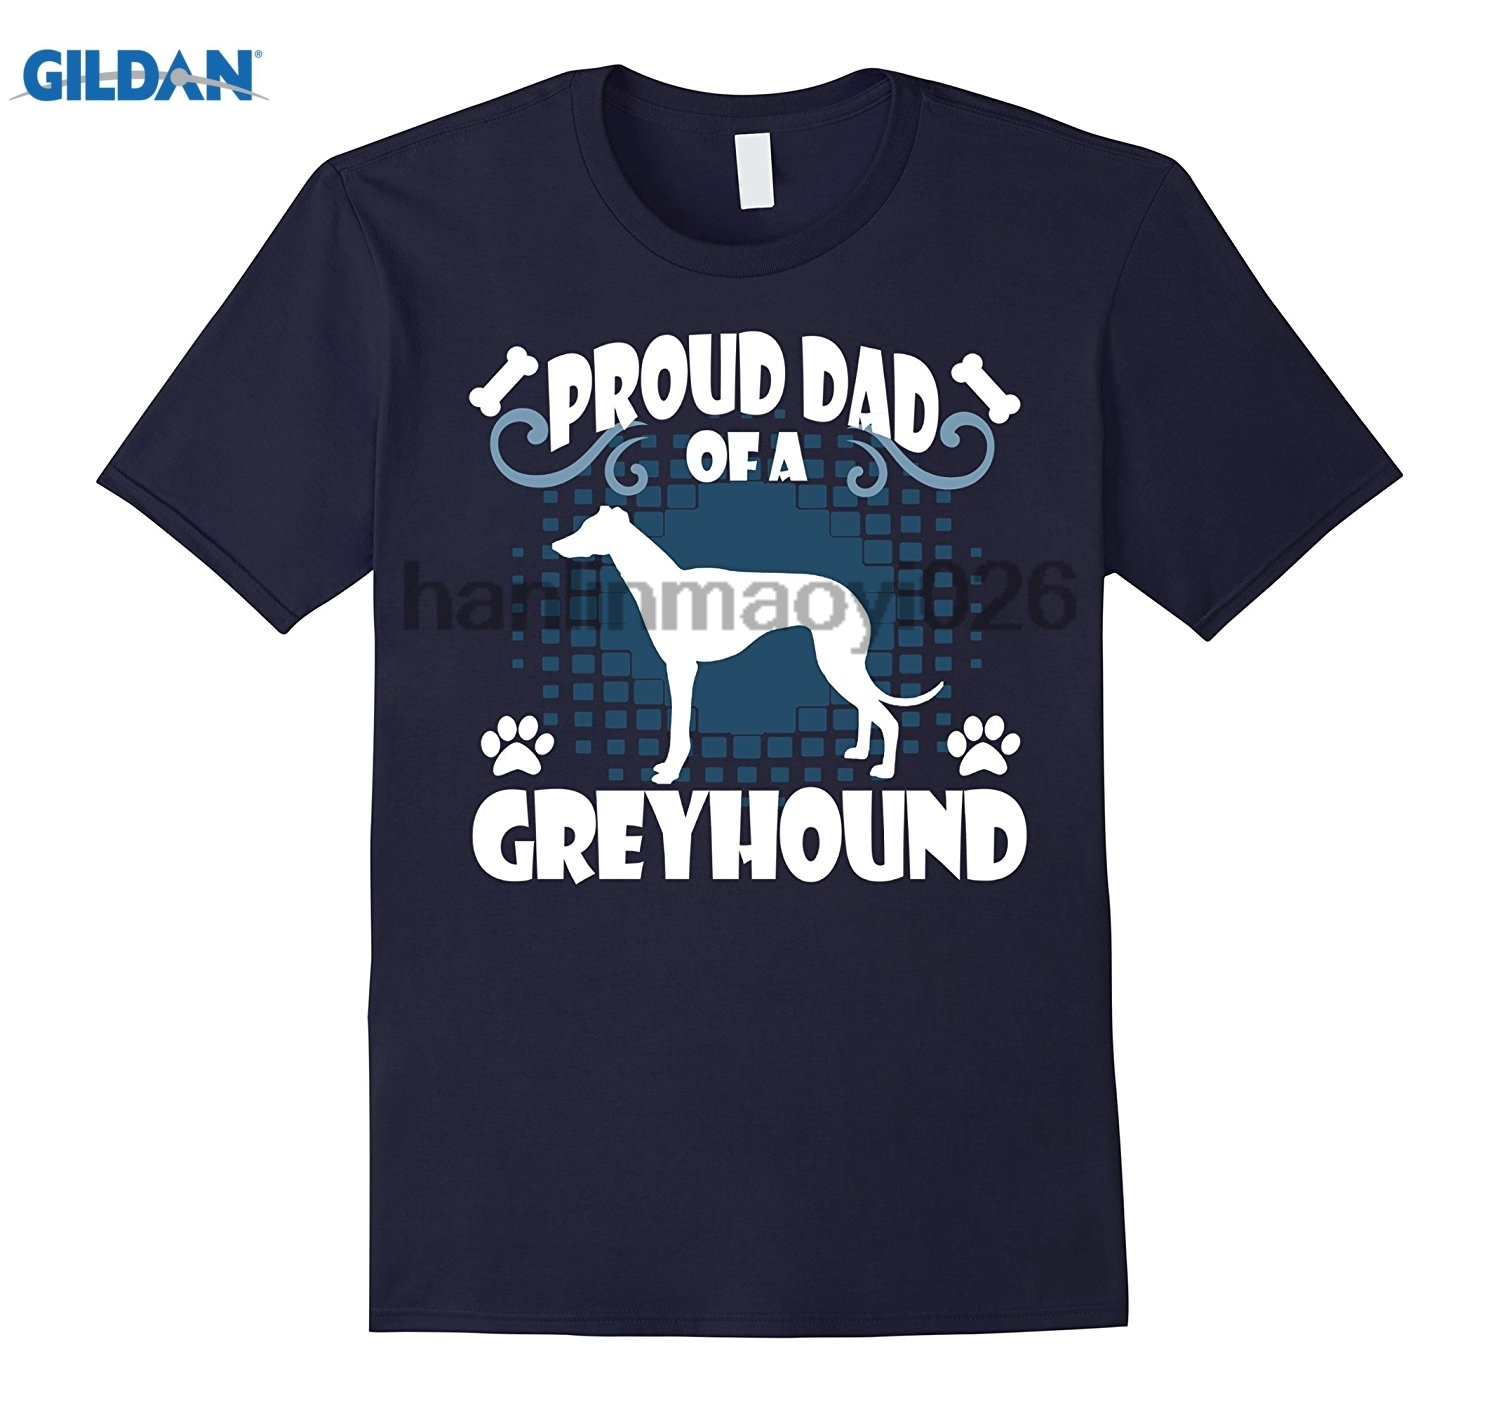 GILDAN Proud Dad Of A Greyhound Shirt Dog DAD Shirt Fur Dad Tee